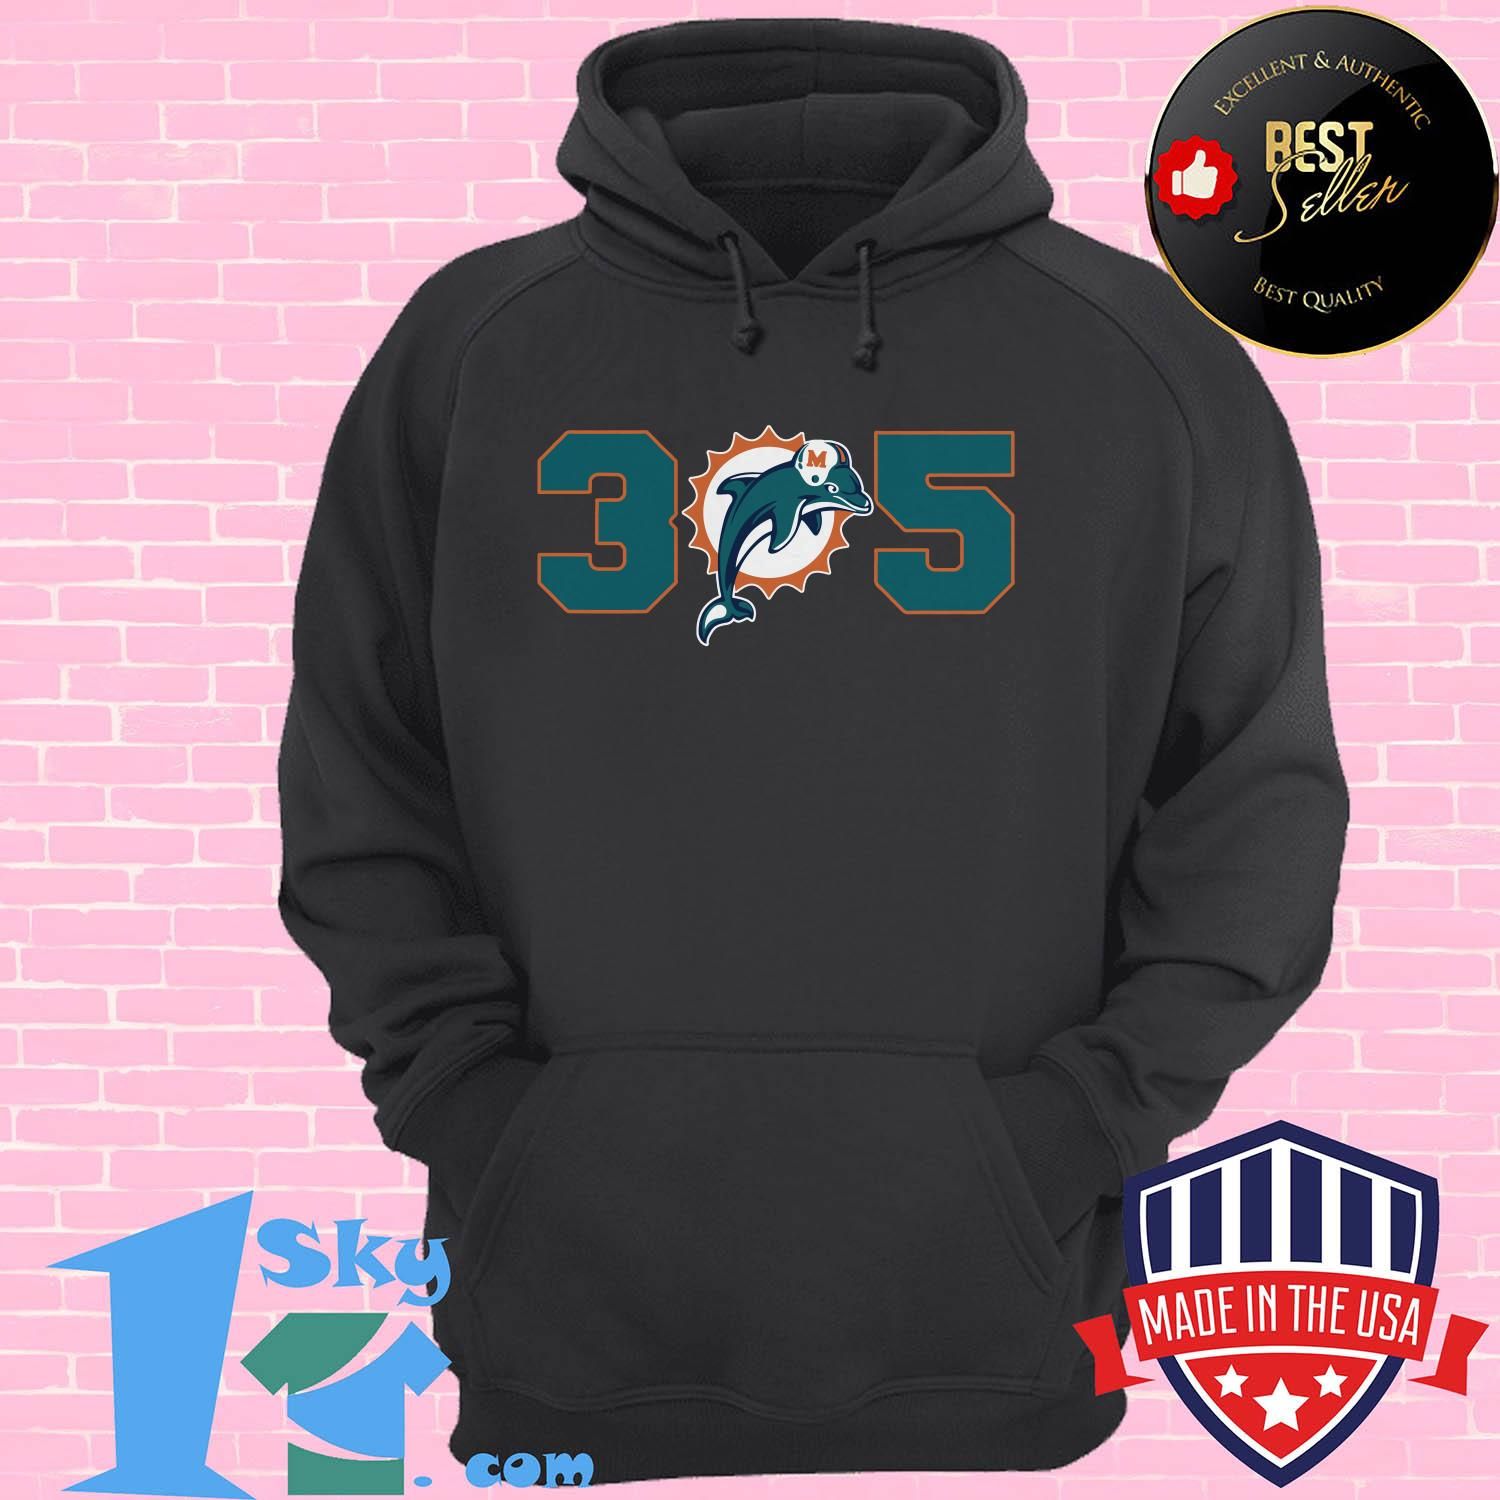 official 305 miami dolphins hoodie - Official 305 Miami Dolphins shirt